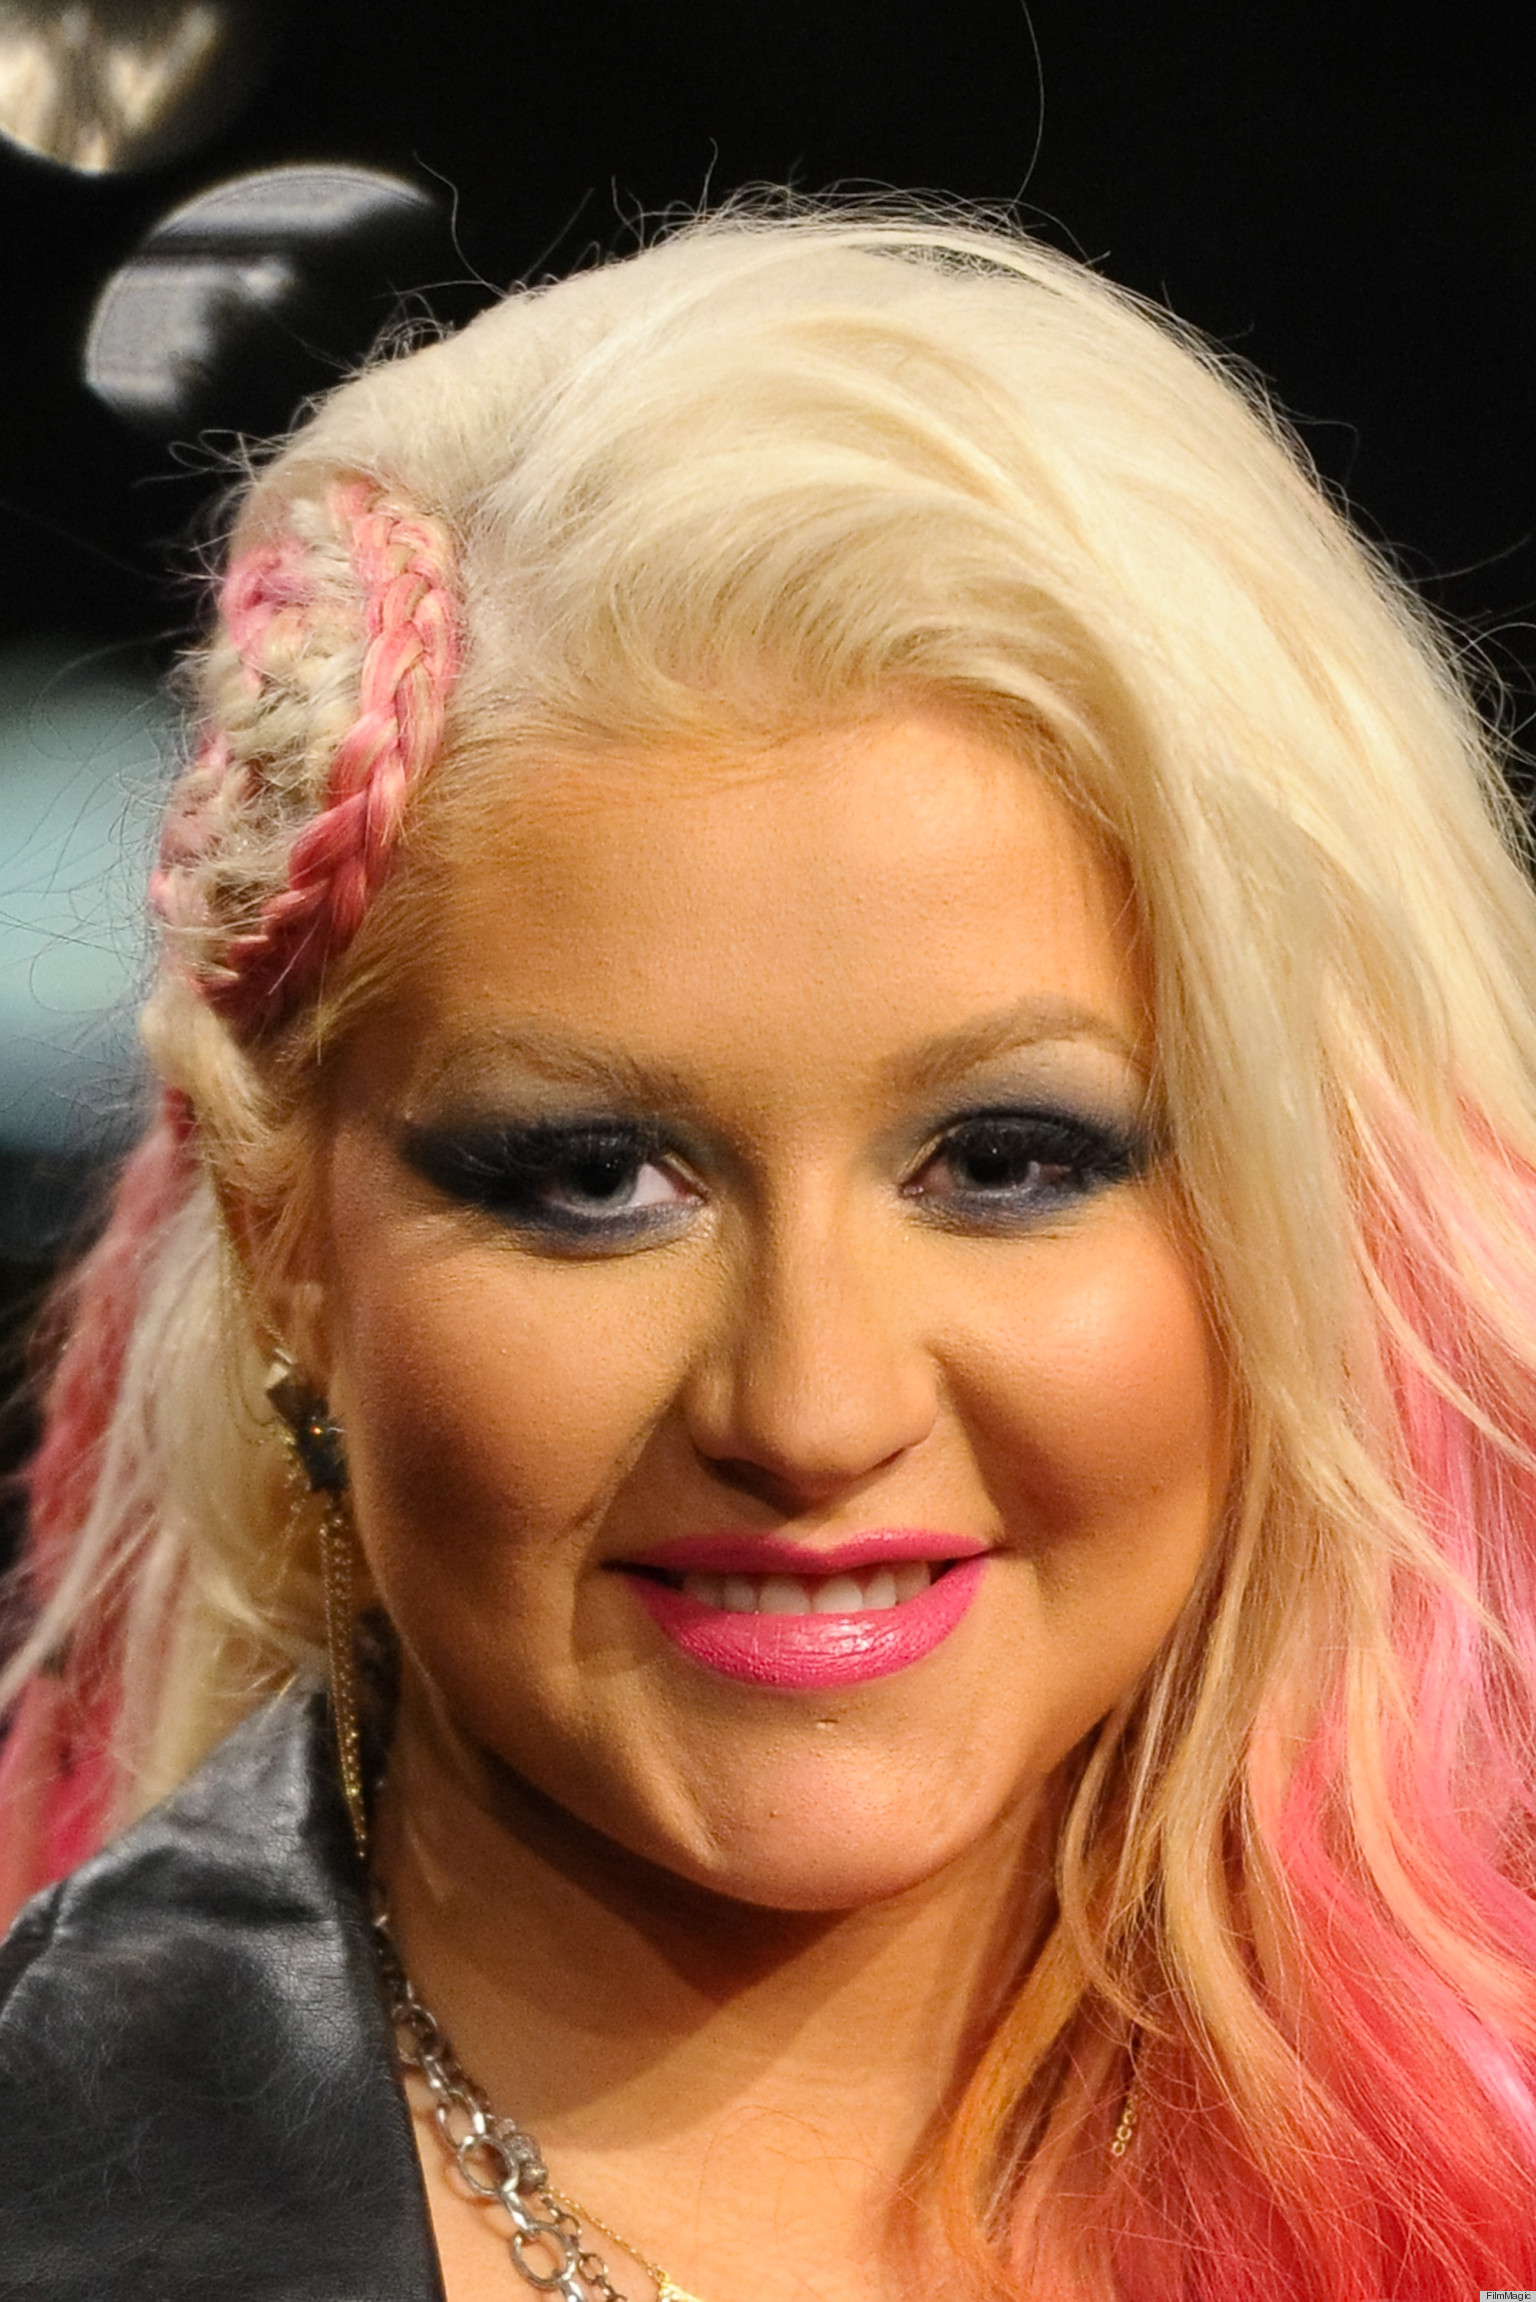 Christina Aguilera Sports Bright Pink Braided Hairstyle ... Christina